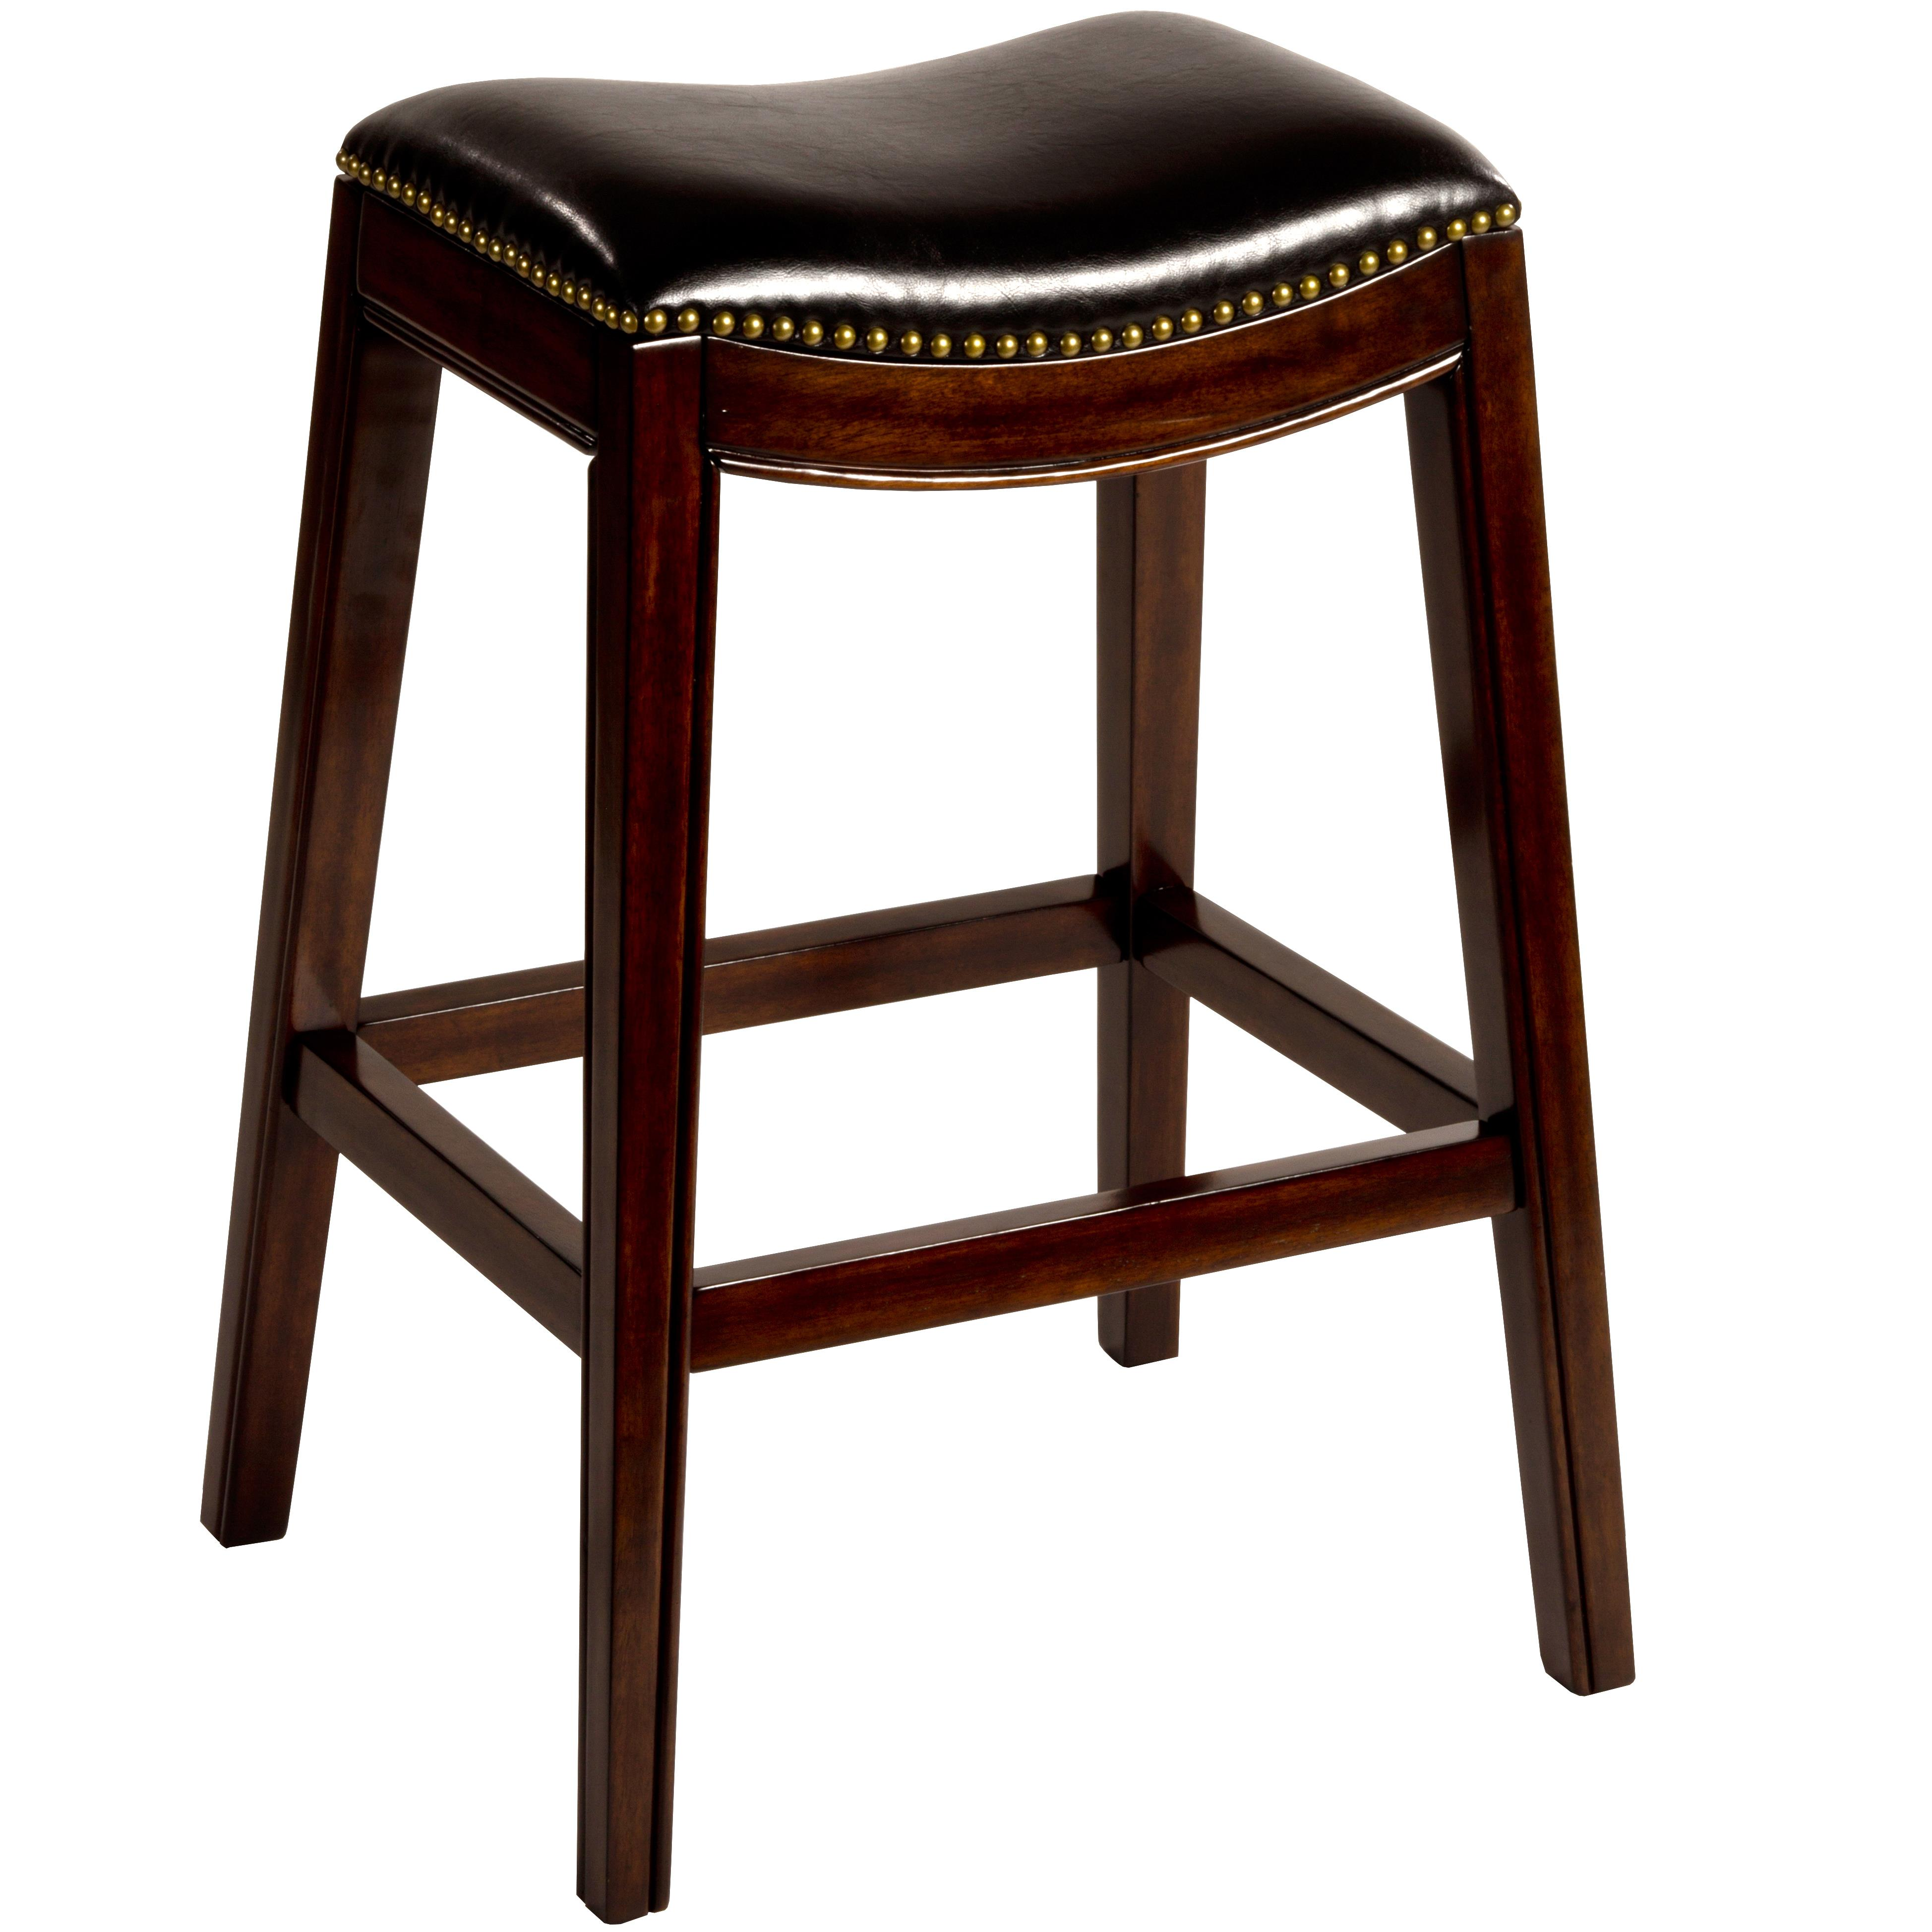 FREE Shipping Everyday on Backless Stools at tenbadownload.ga Enjoy our special deals by browsing our selection!